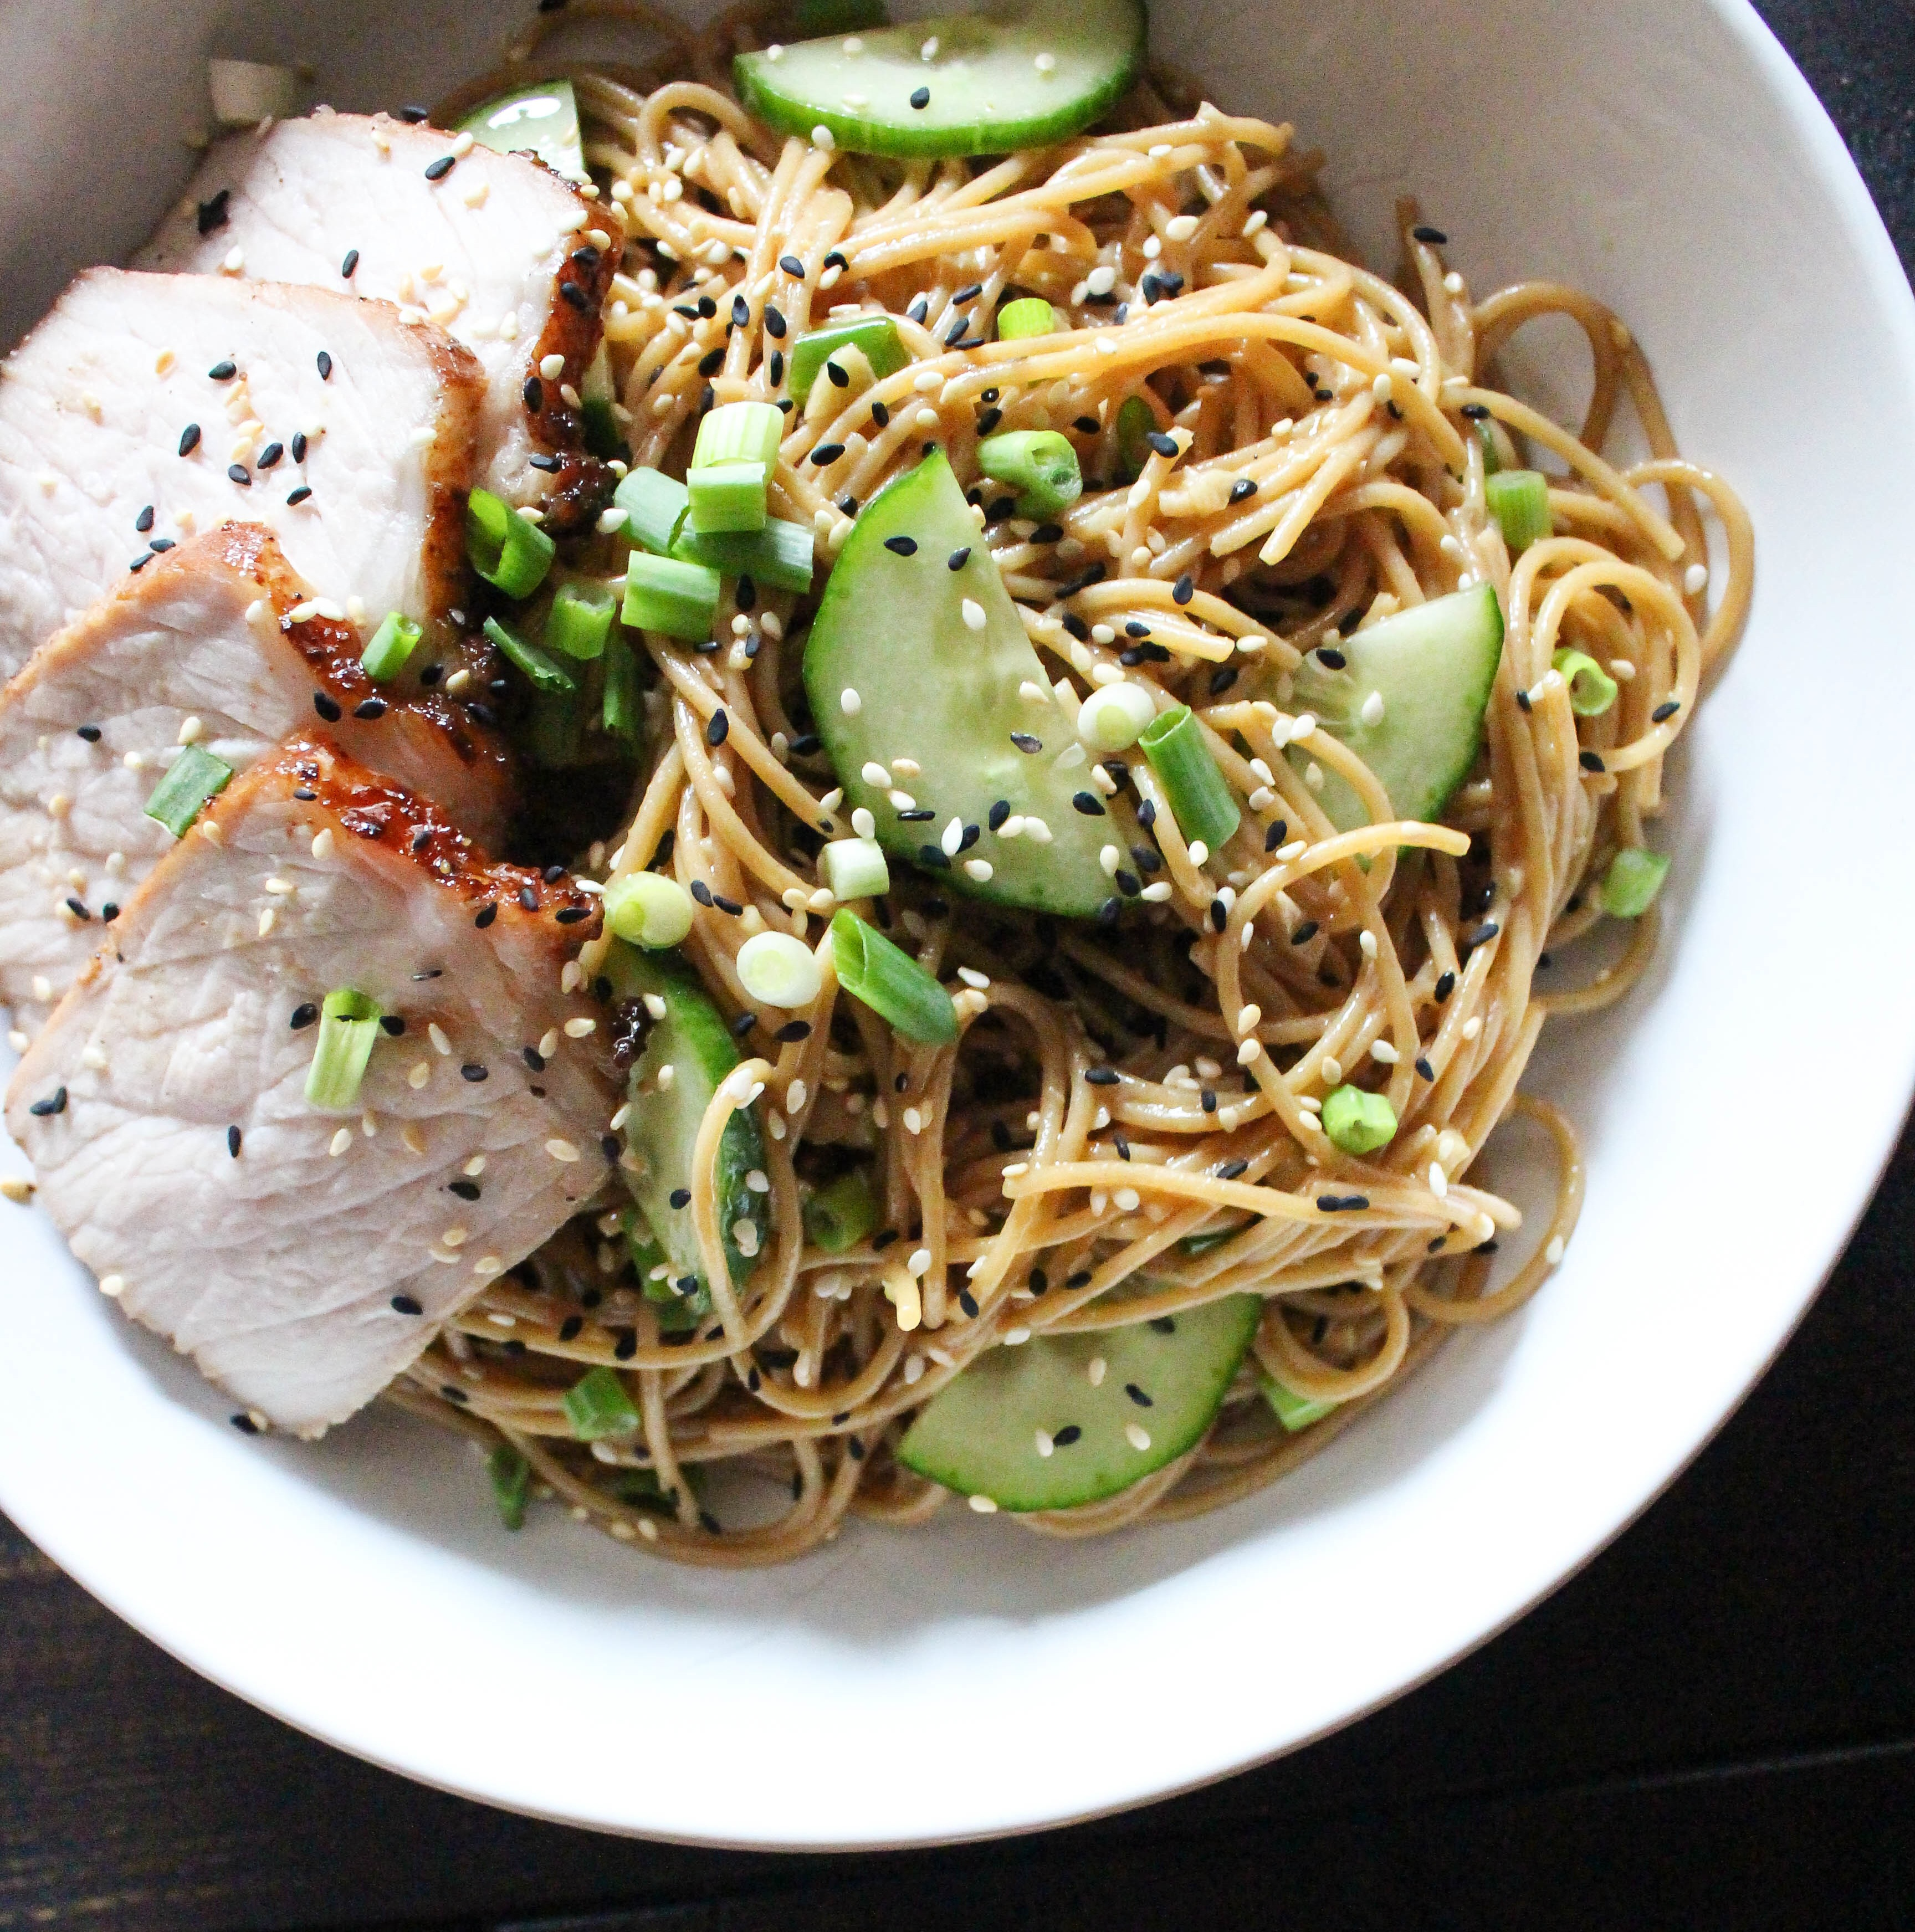 Warm Wasabi Noodles with Asian Marinated Pork Loin